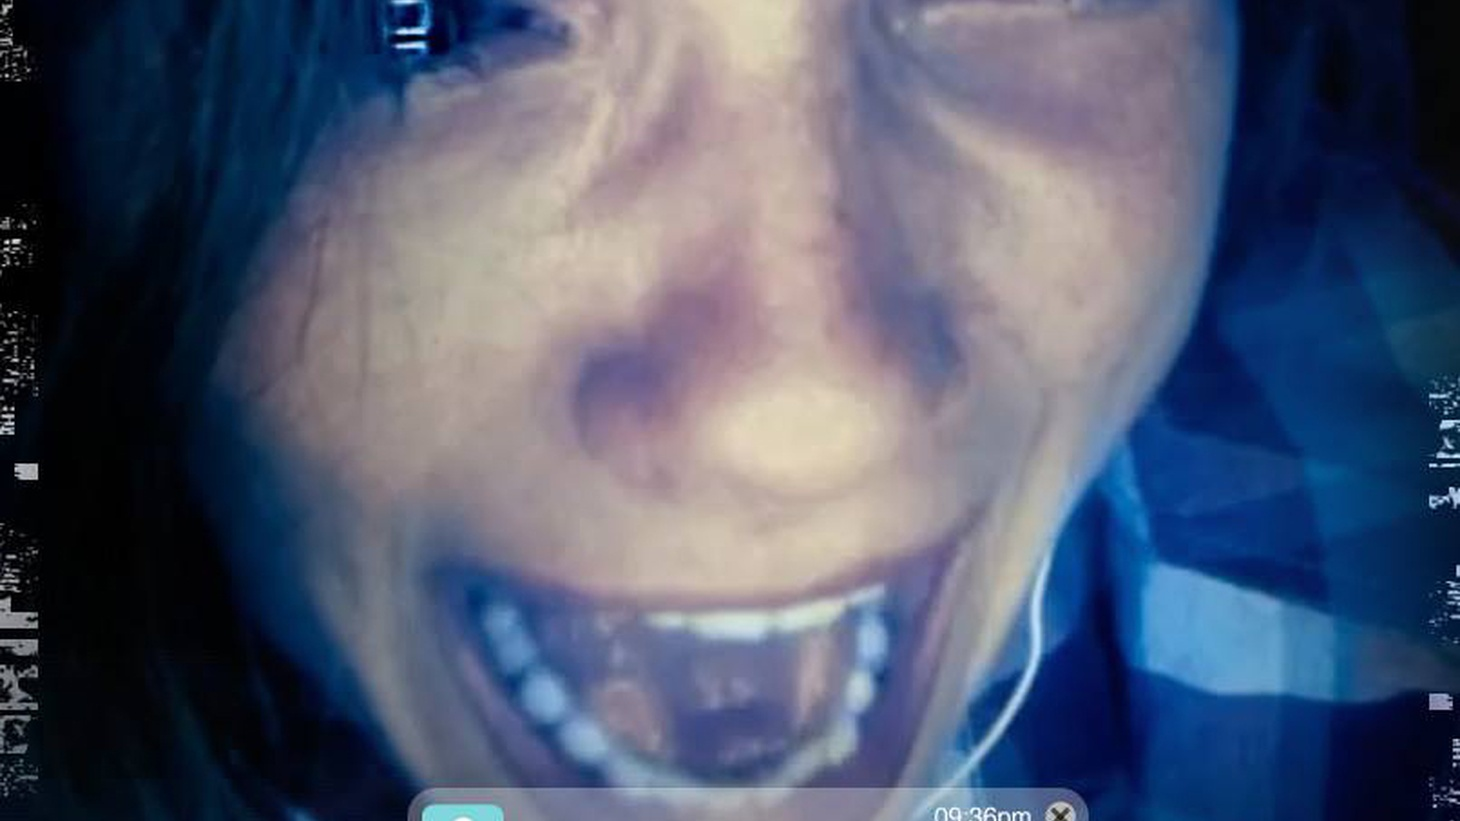 Unfriended is a micro-budget horror film played out entirely one high school girl's laptop.